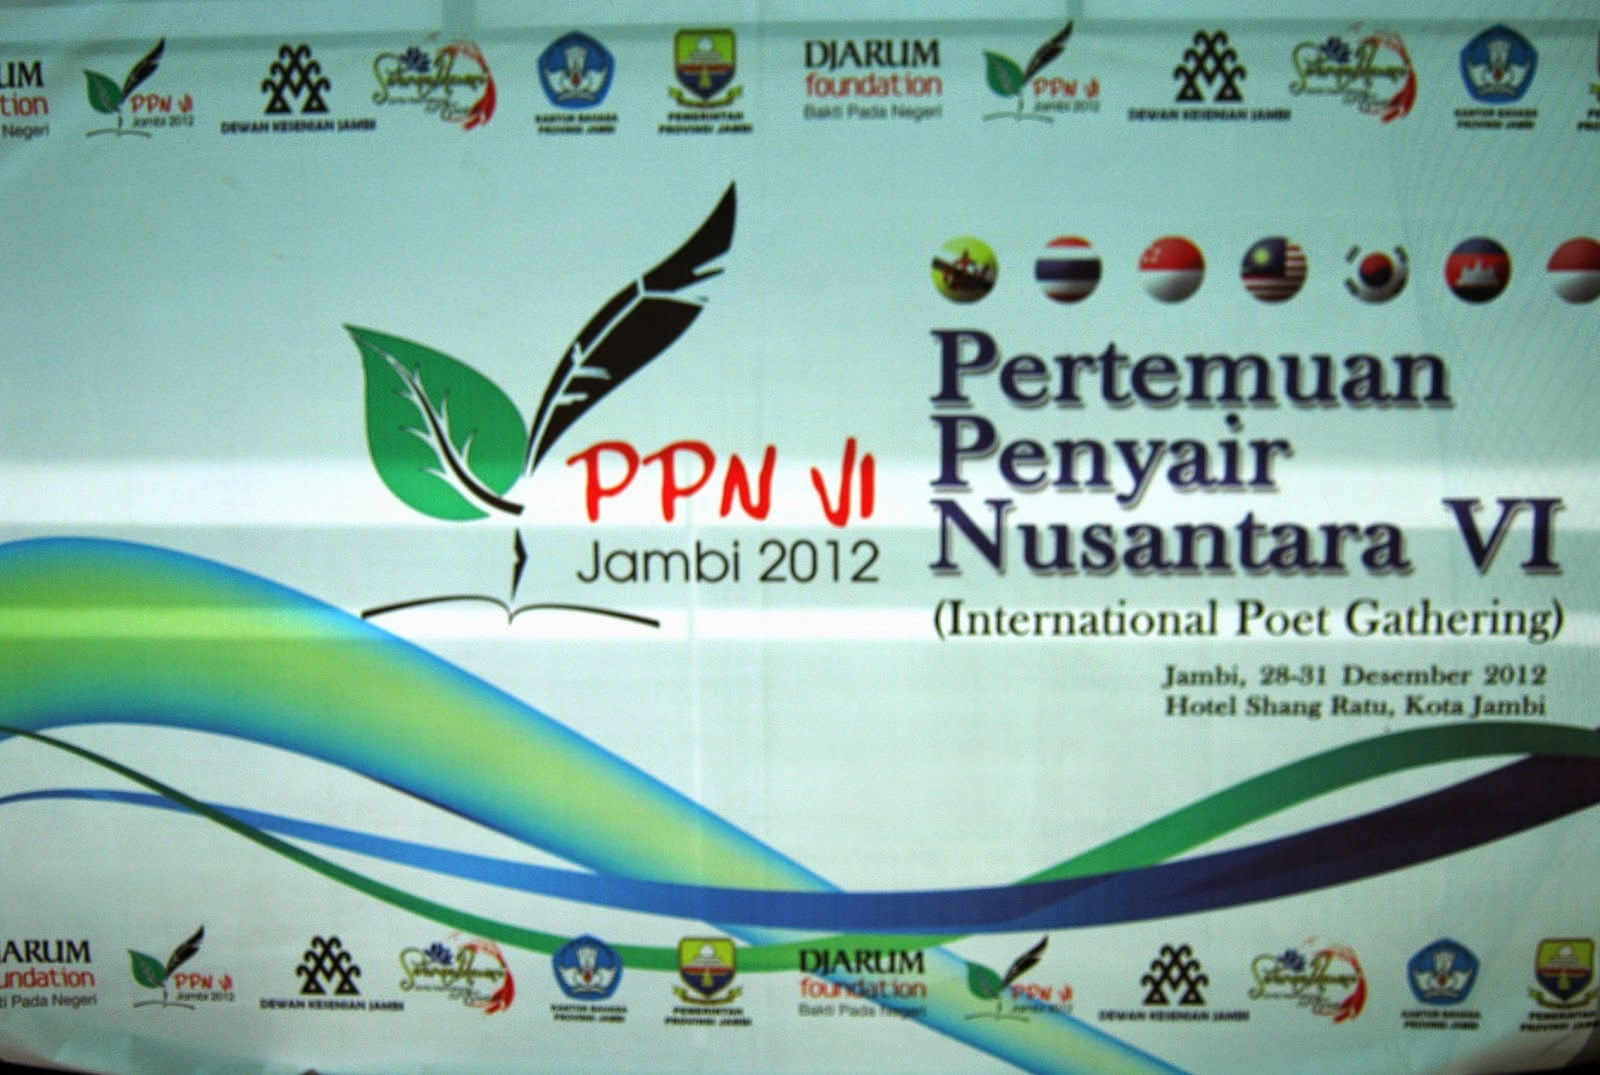 Pertemuan Penyair Nusantara